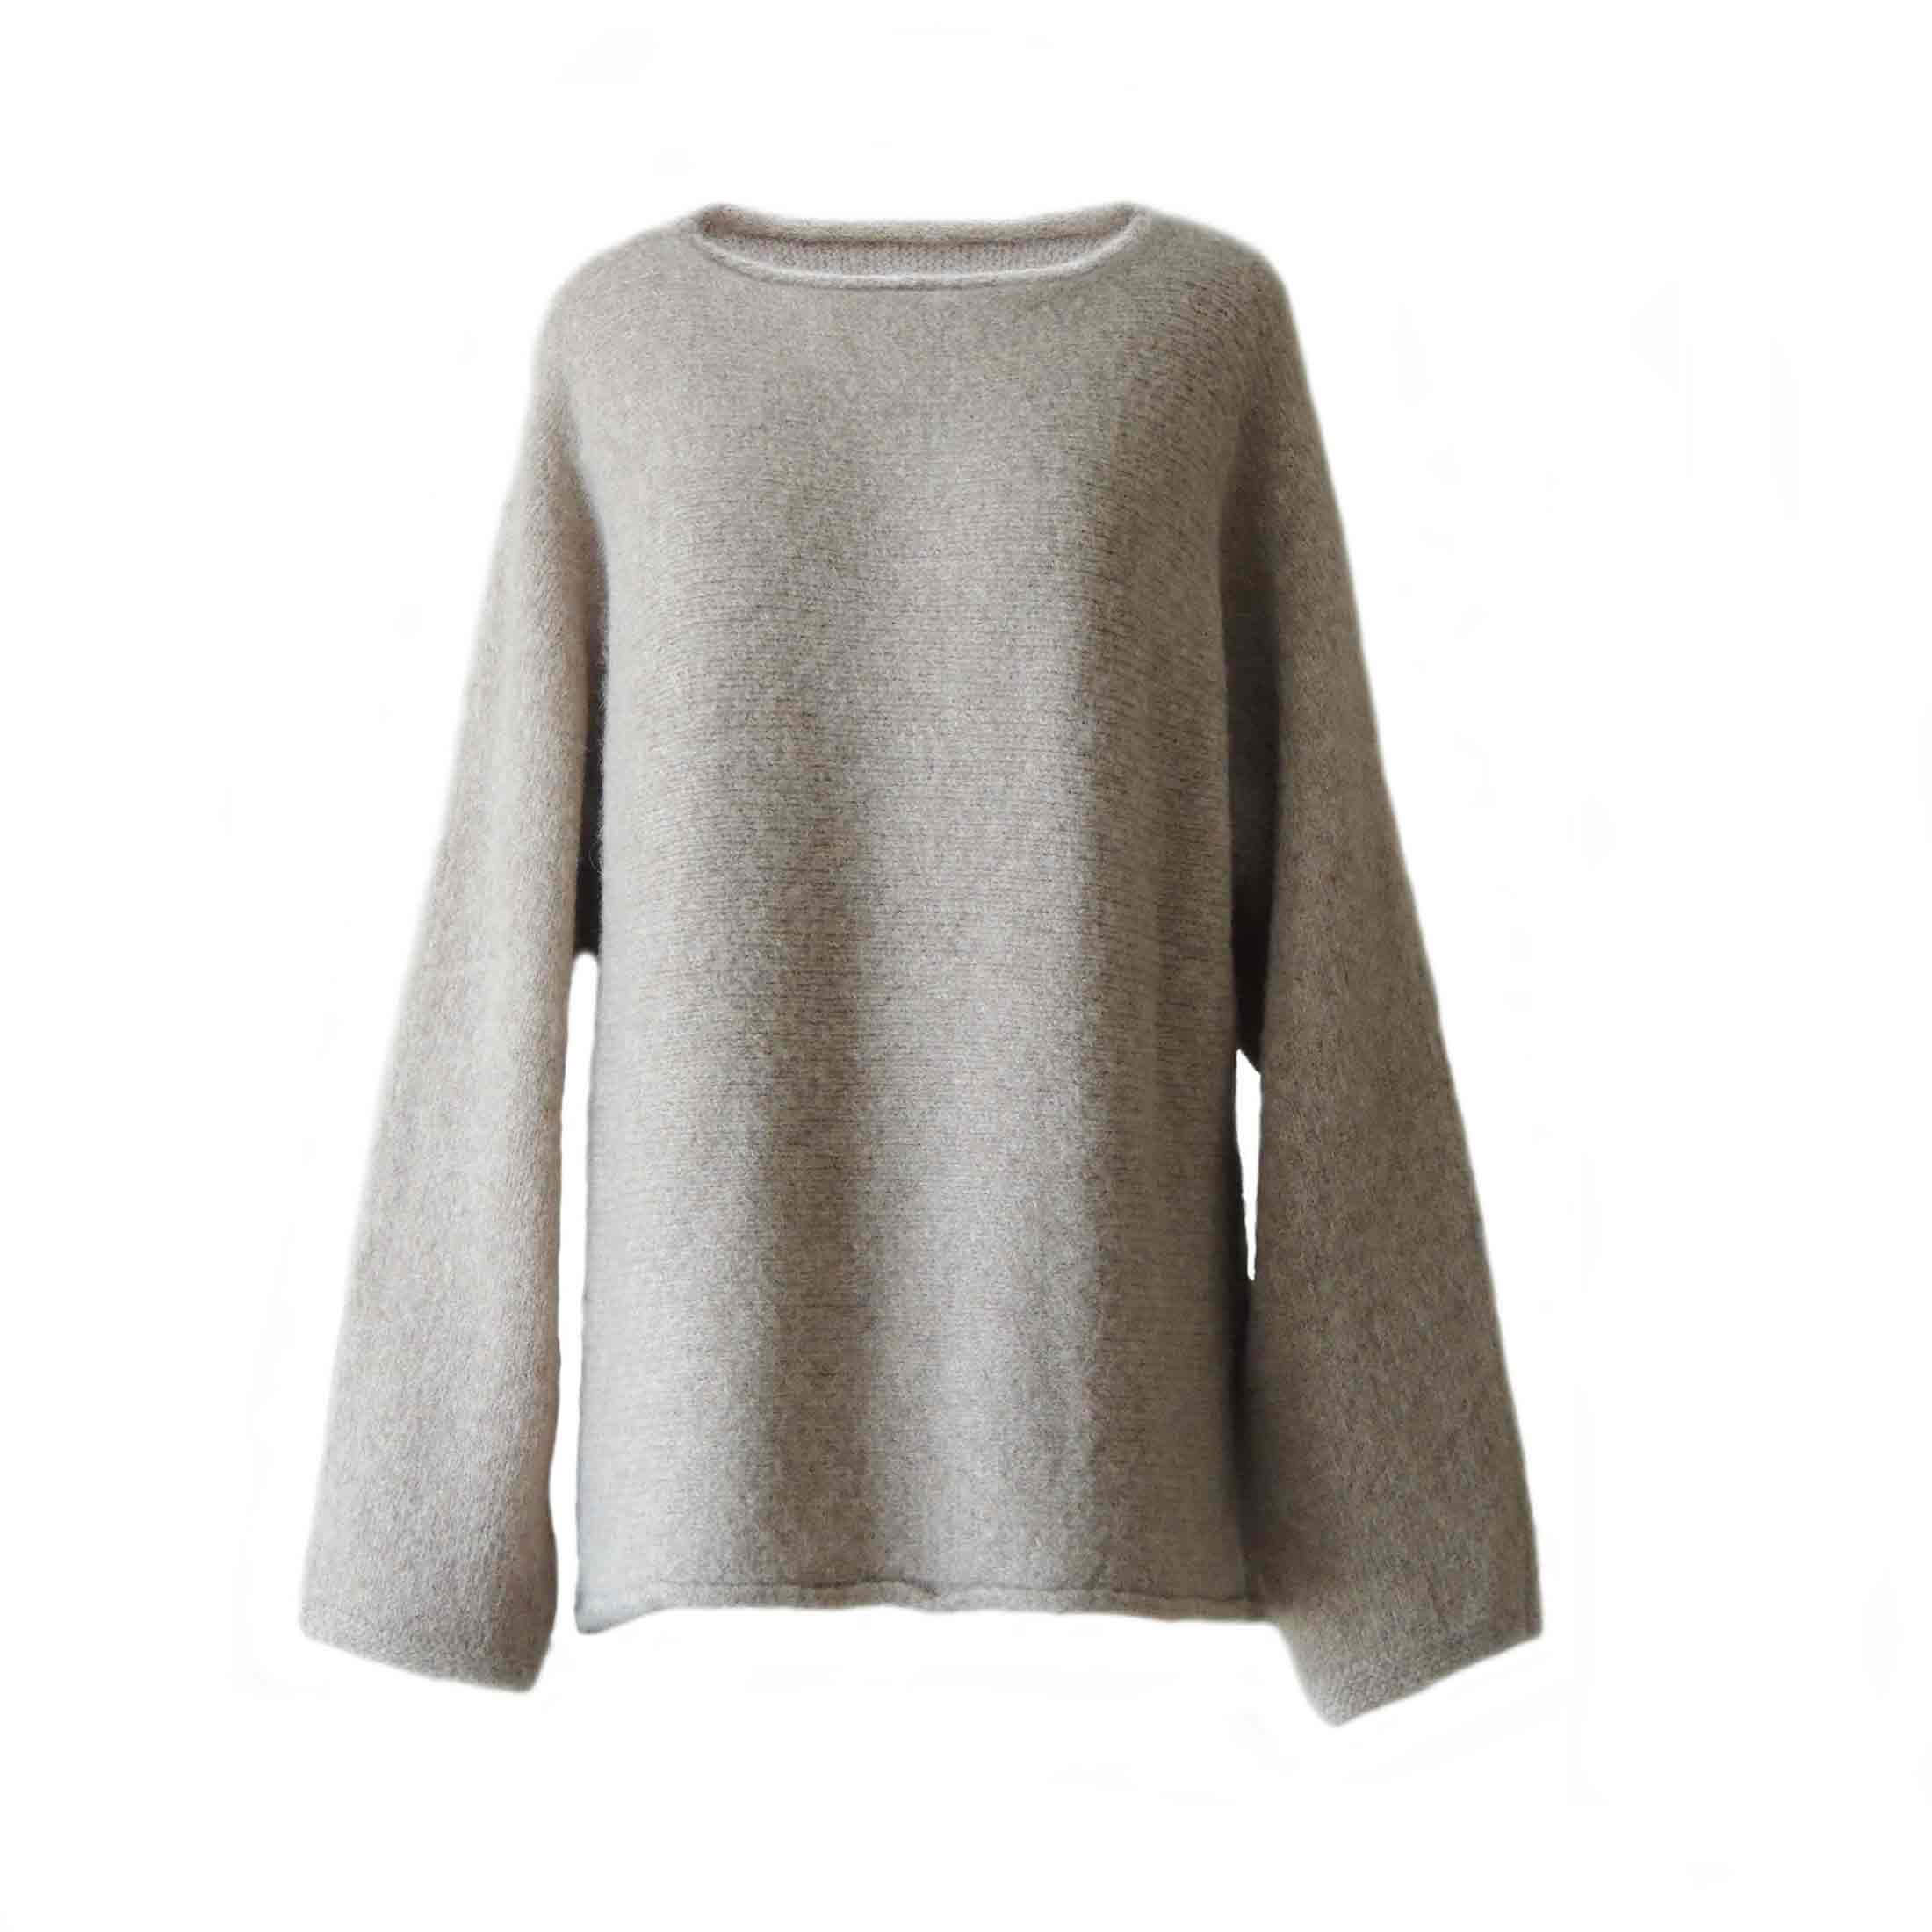 PopsFL Knitwear wholesale Women oversized sweater, solid color with boat neck in felted alpaca blend Industrial knitted made in Peru